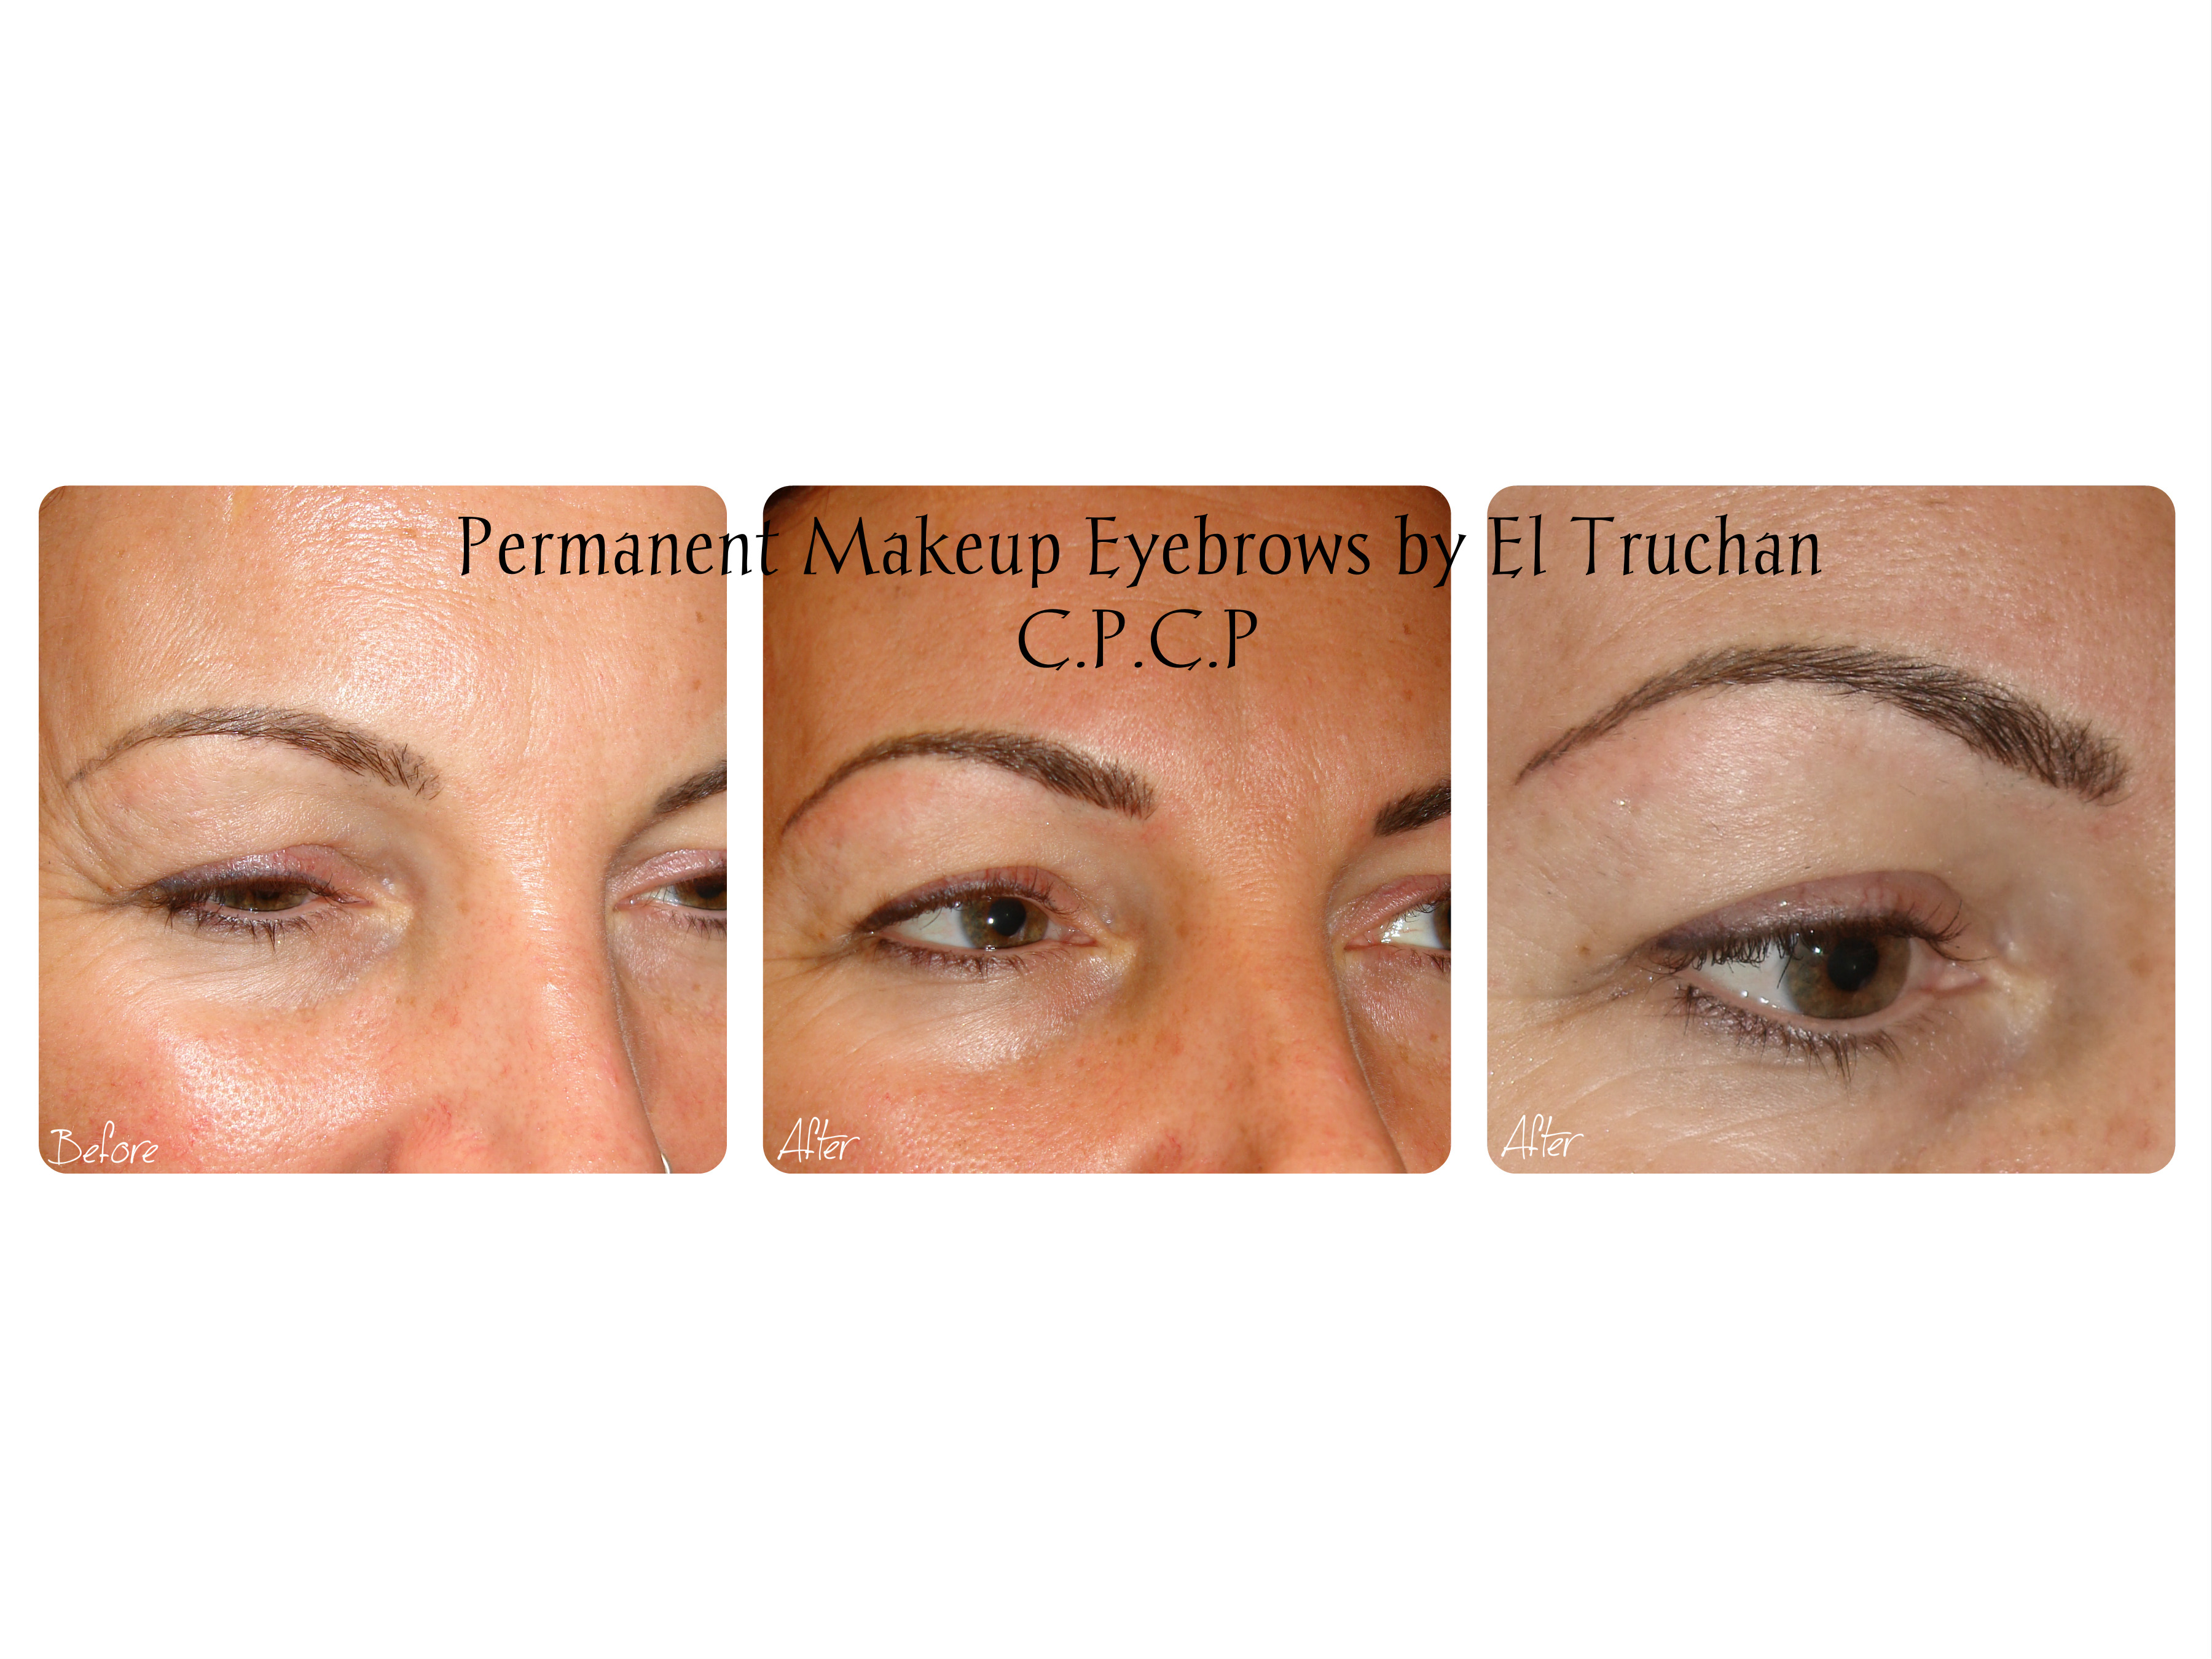 Eyebrows Permanent Makeup by El Truchan CPCP London